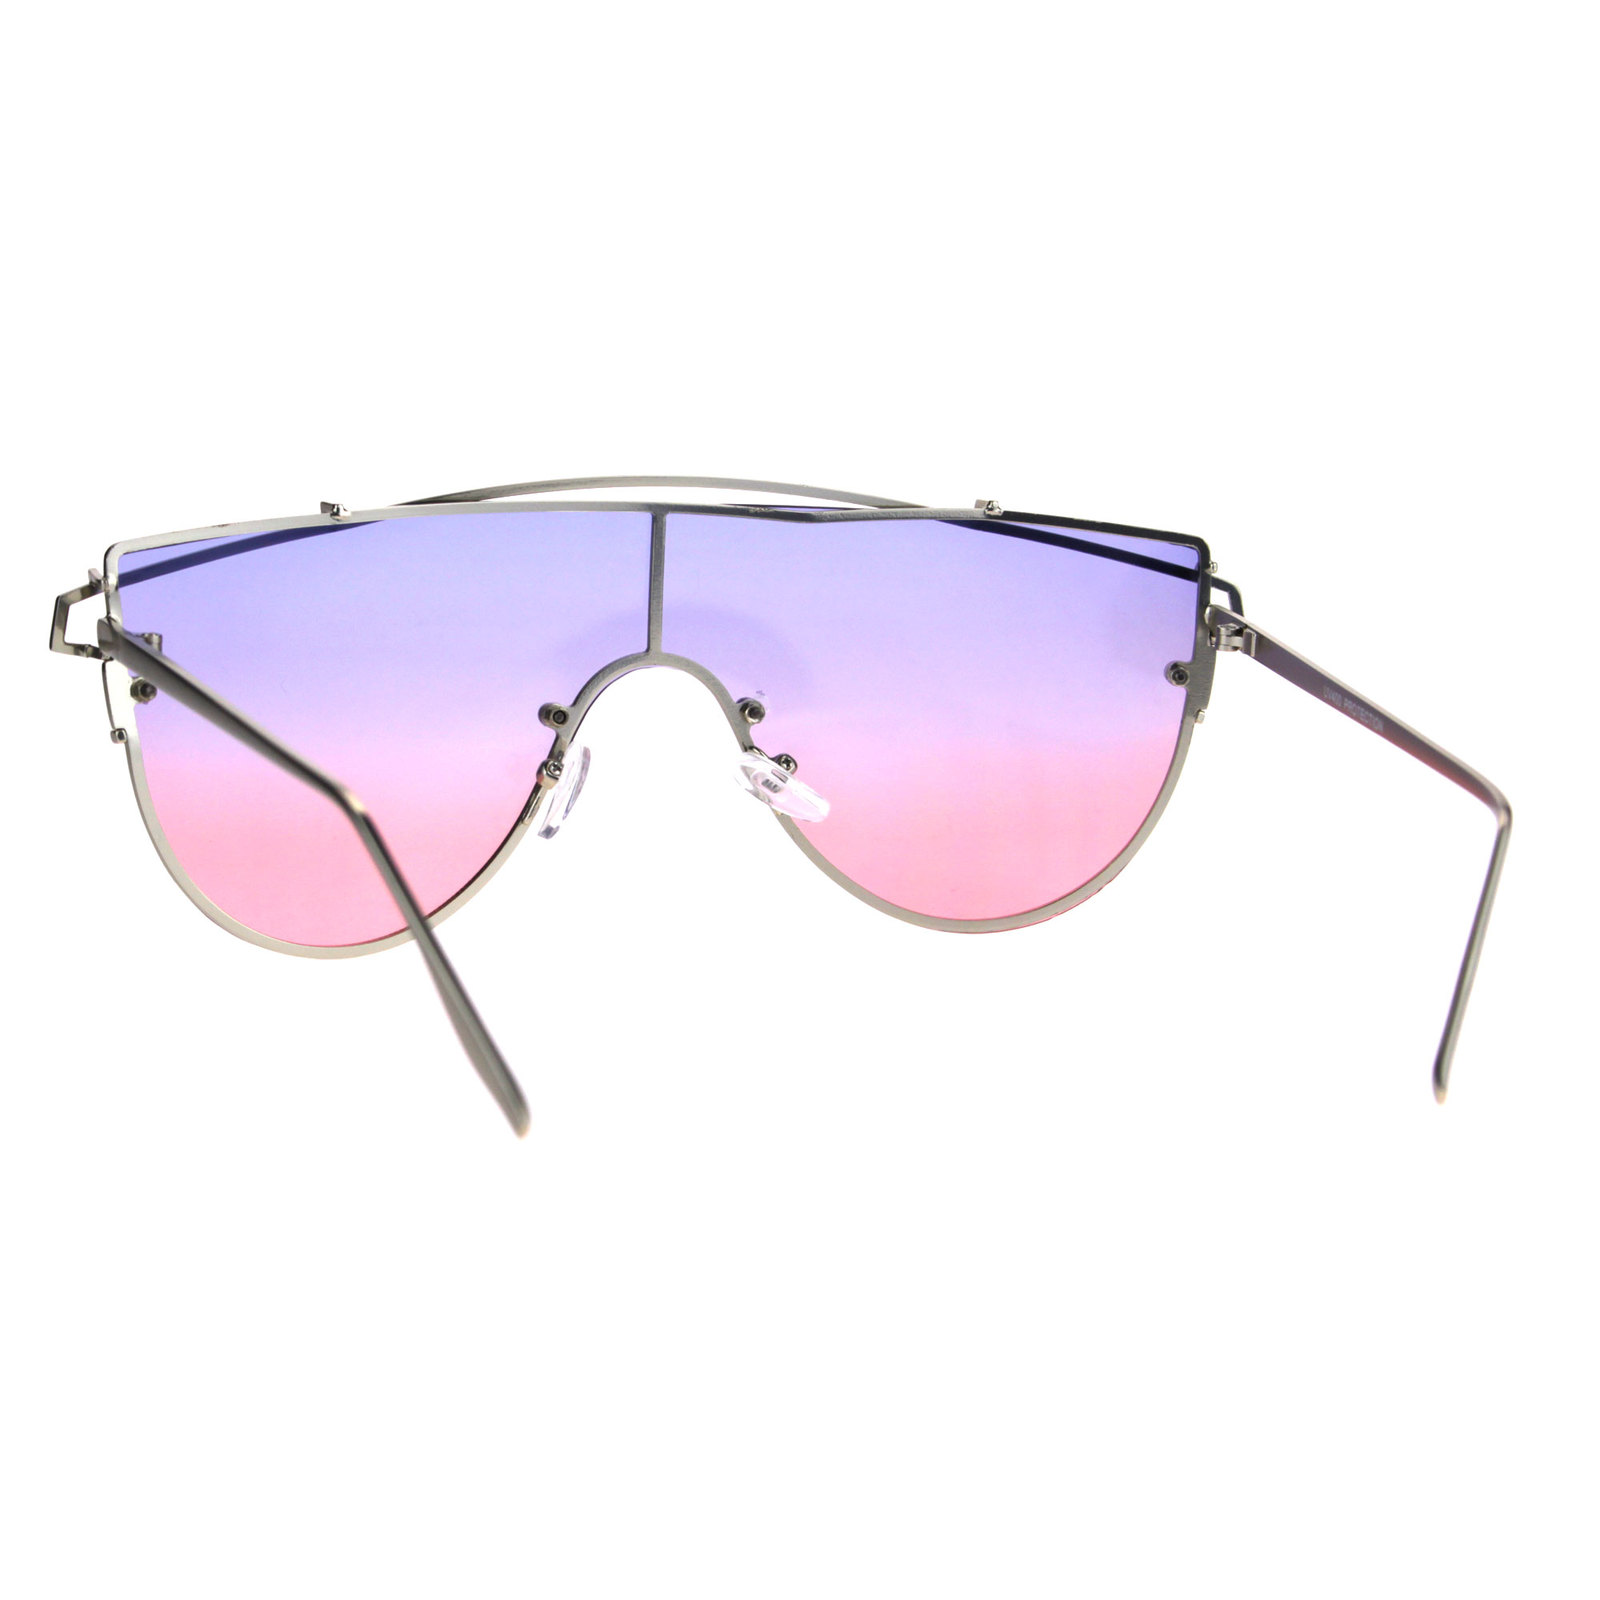 Oceanic Tie Dye Gradient Shield Robotic Futurism Sunglasses